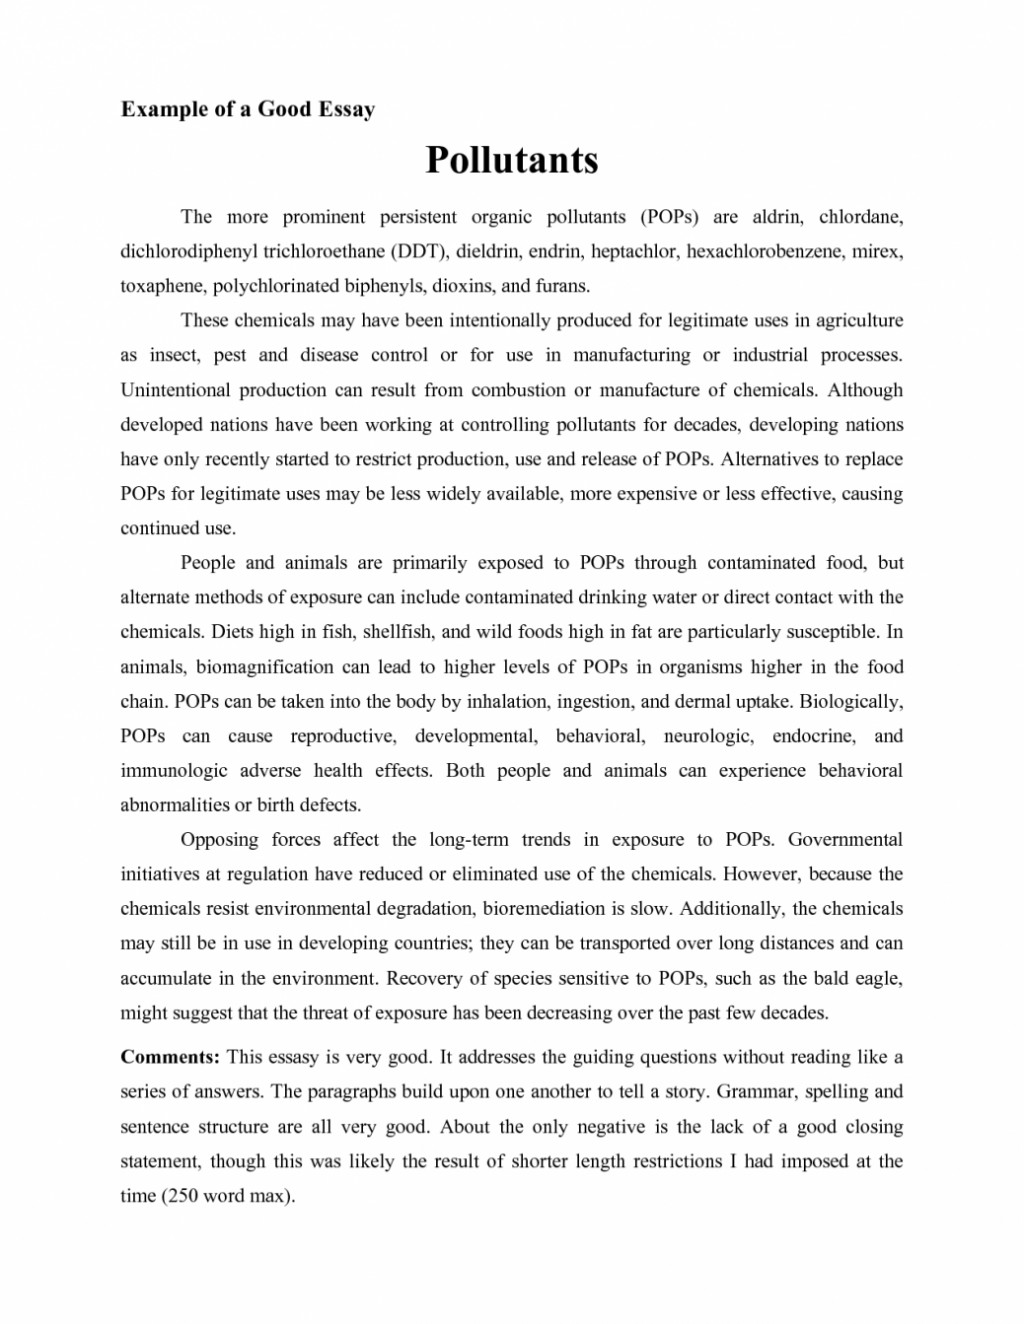 005 Free Sample Argumentative Research Paper Essay High School Good Persuasive Topics For With Citations Example Writing An Argument Letter Template Surprising Large